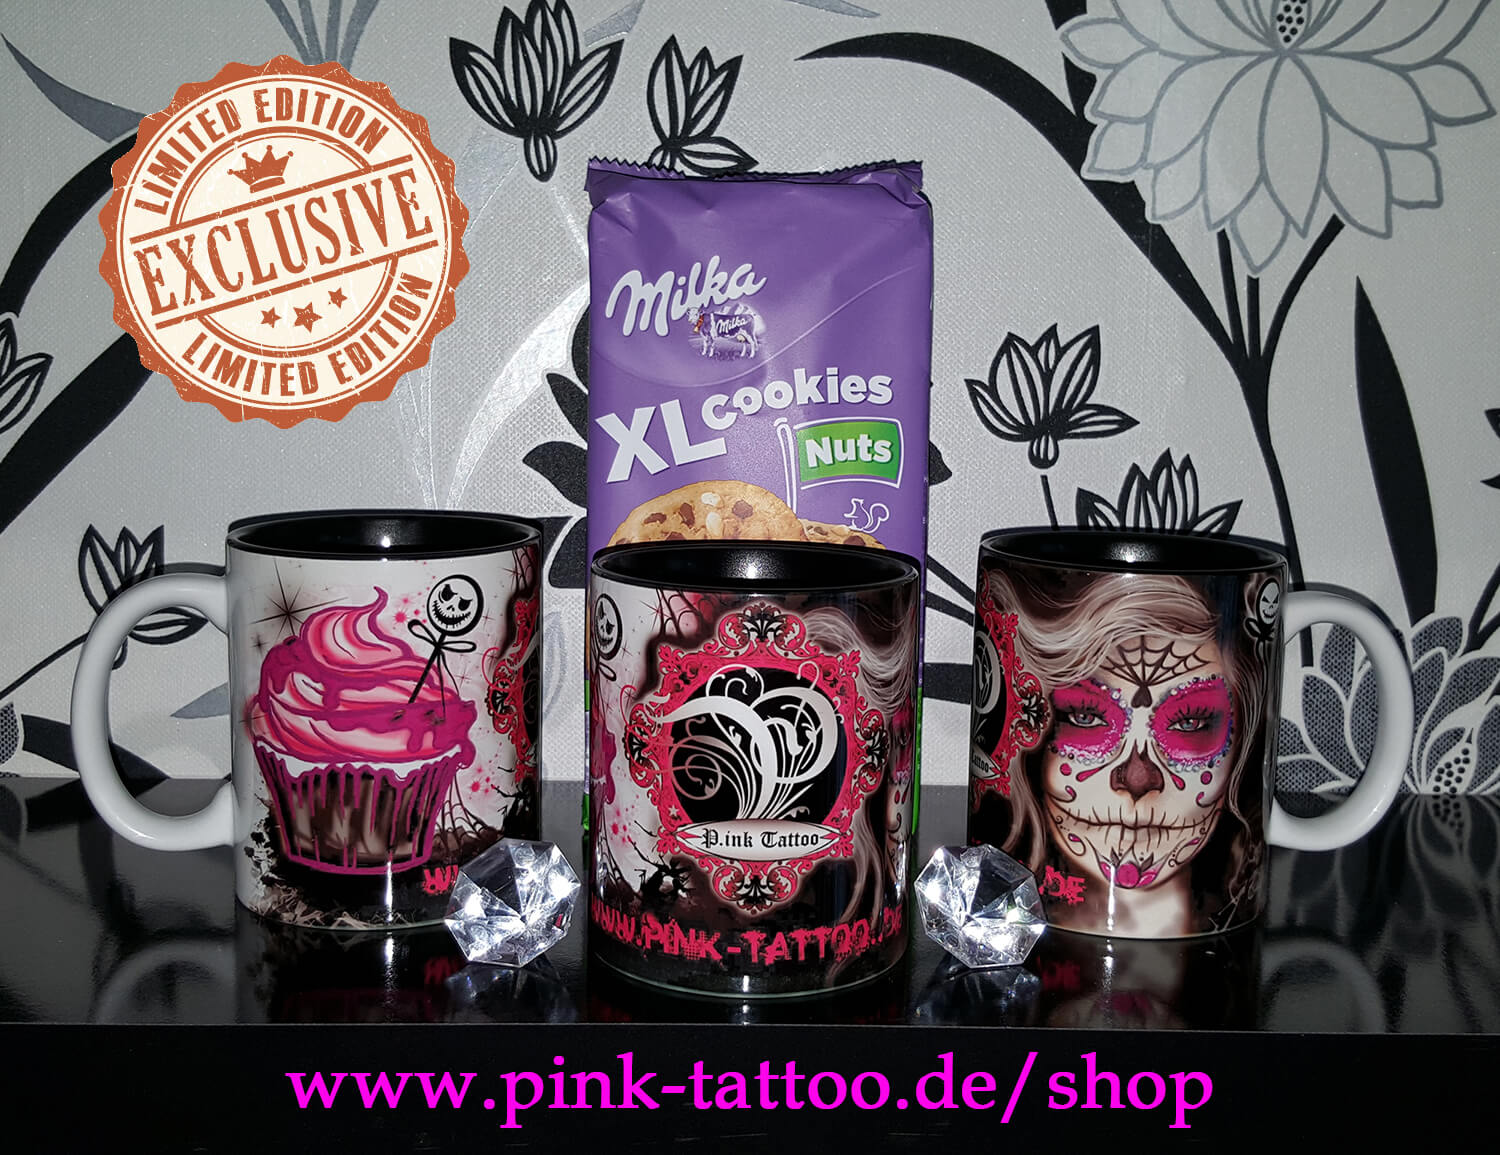 P.ink Tattoo Studio Kaffeetasse